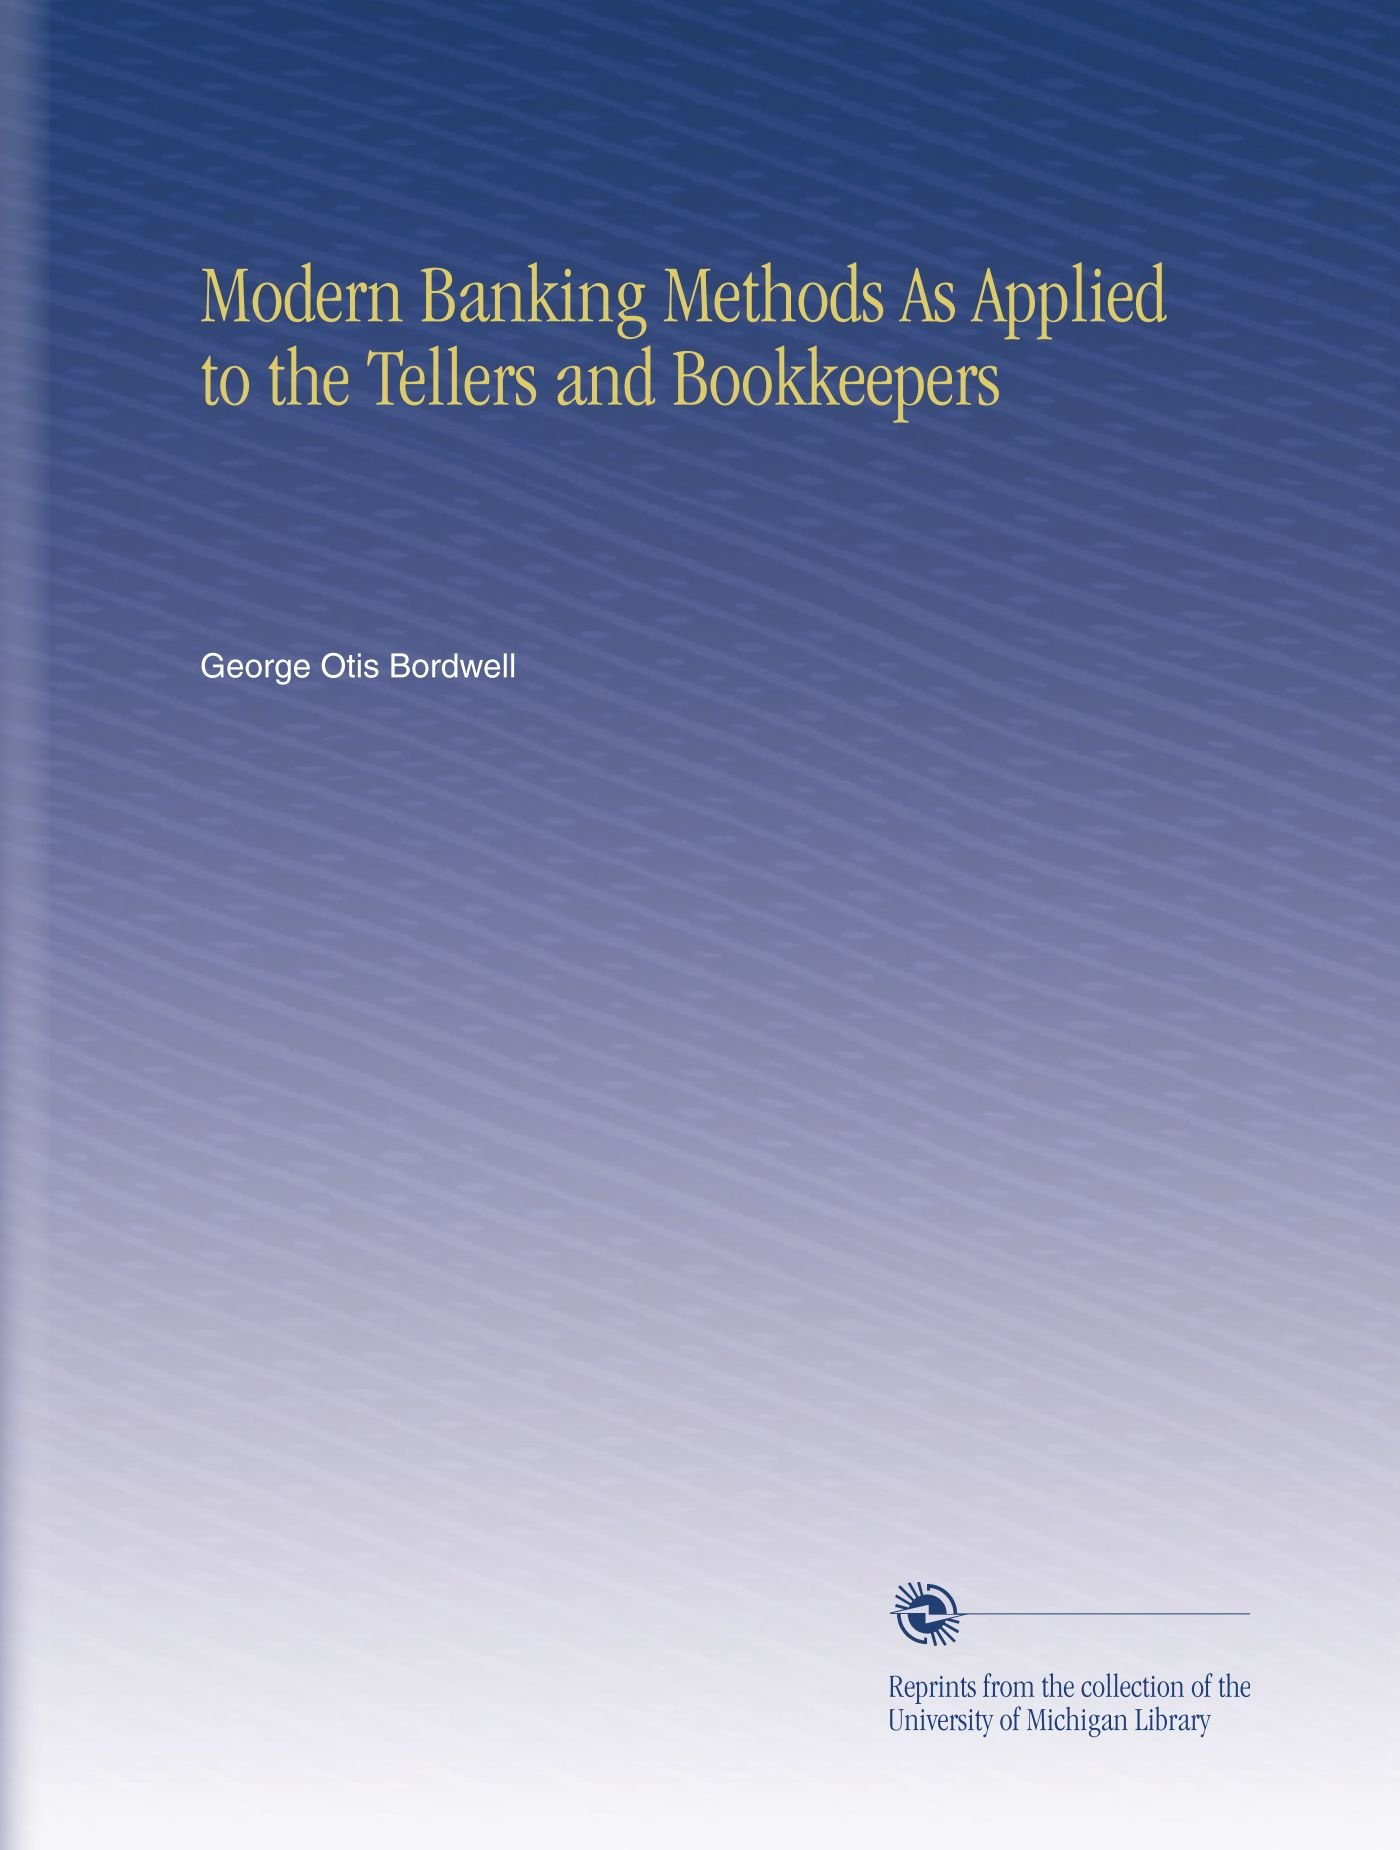 Download Modern Banking Methods As Applied to the Tellers and Bookkeepers ebook